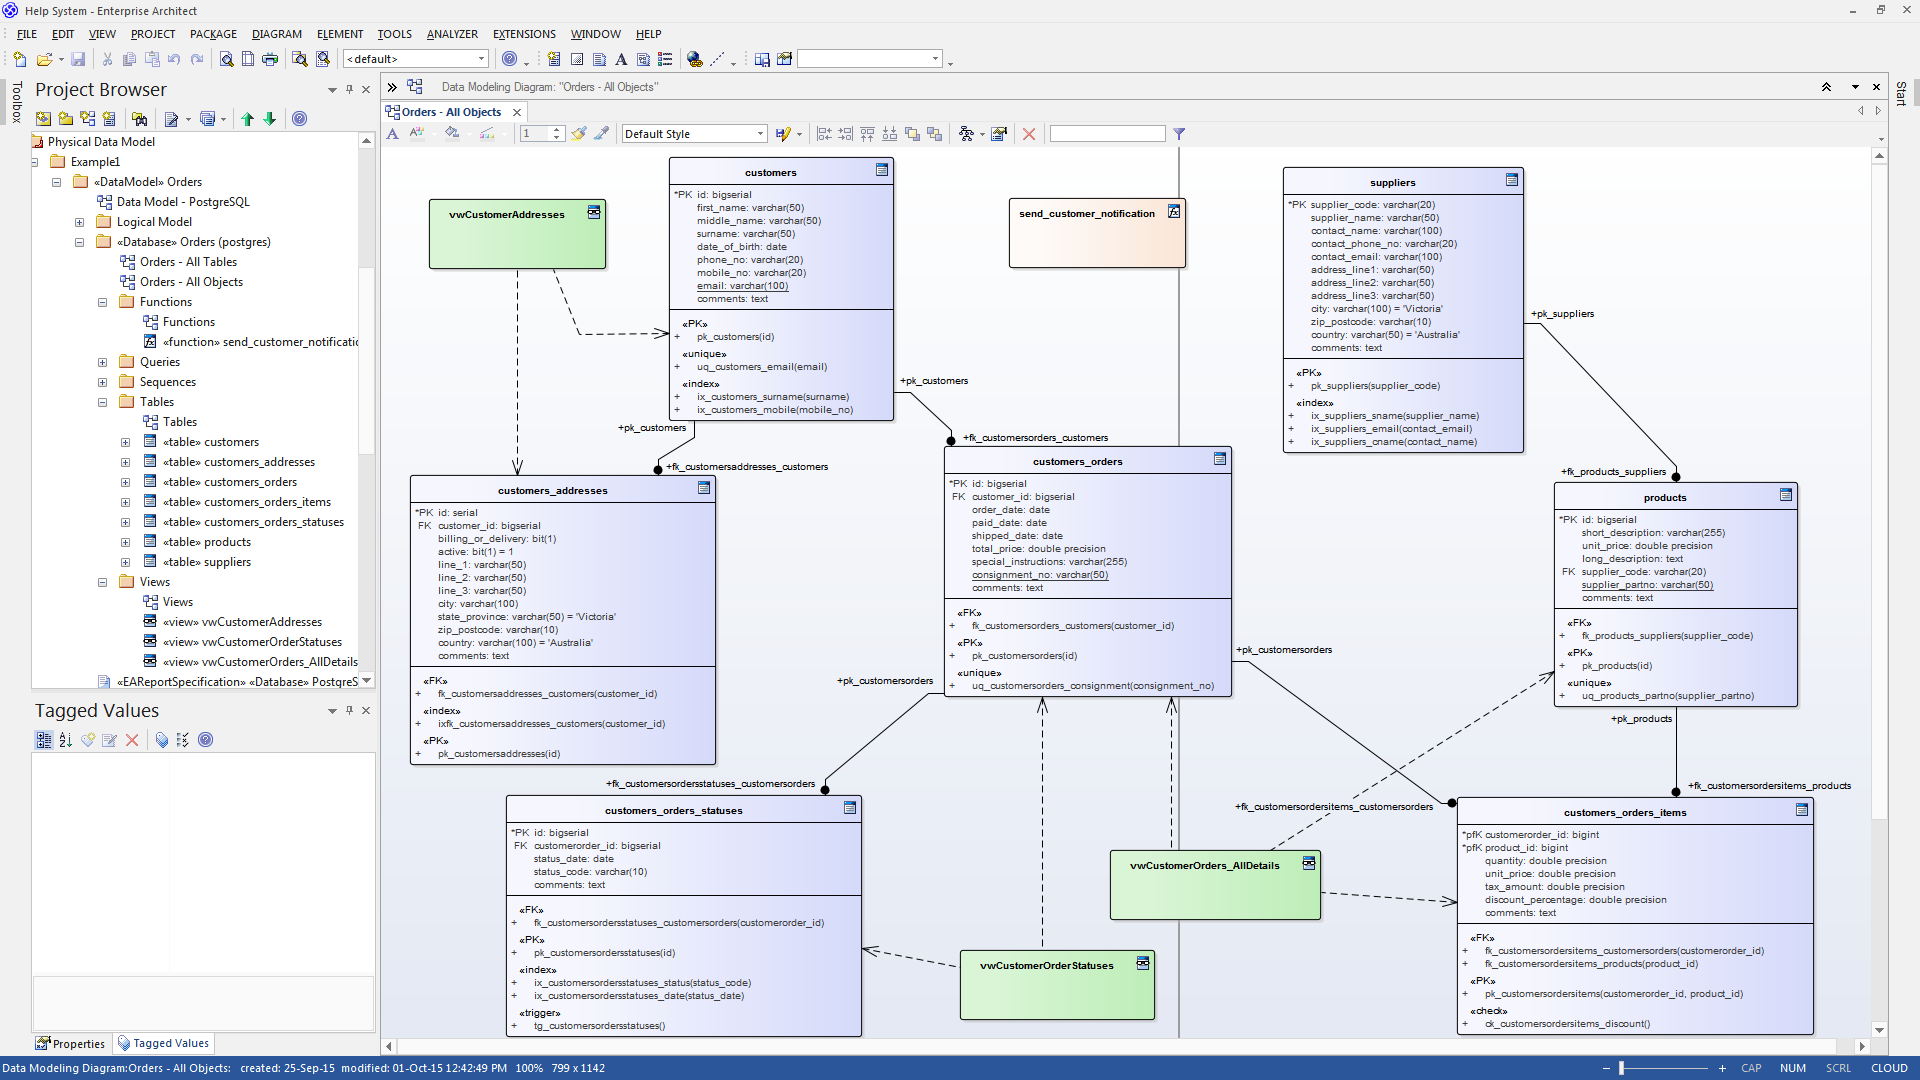 database models | enterprise architect user guide